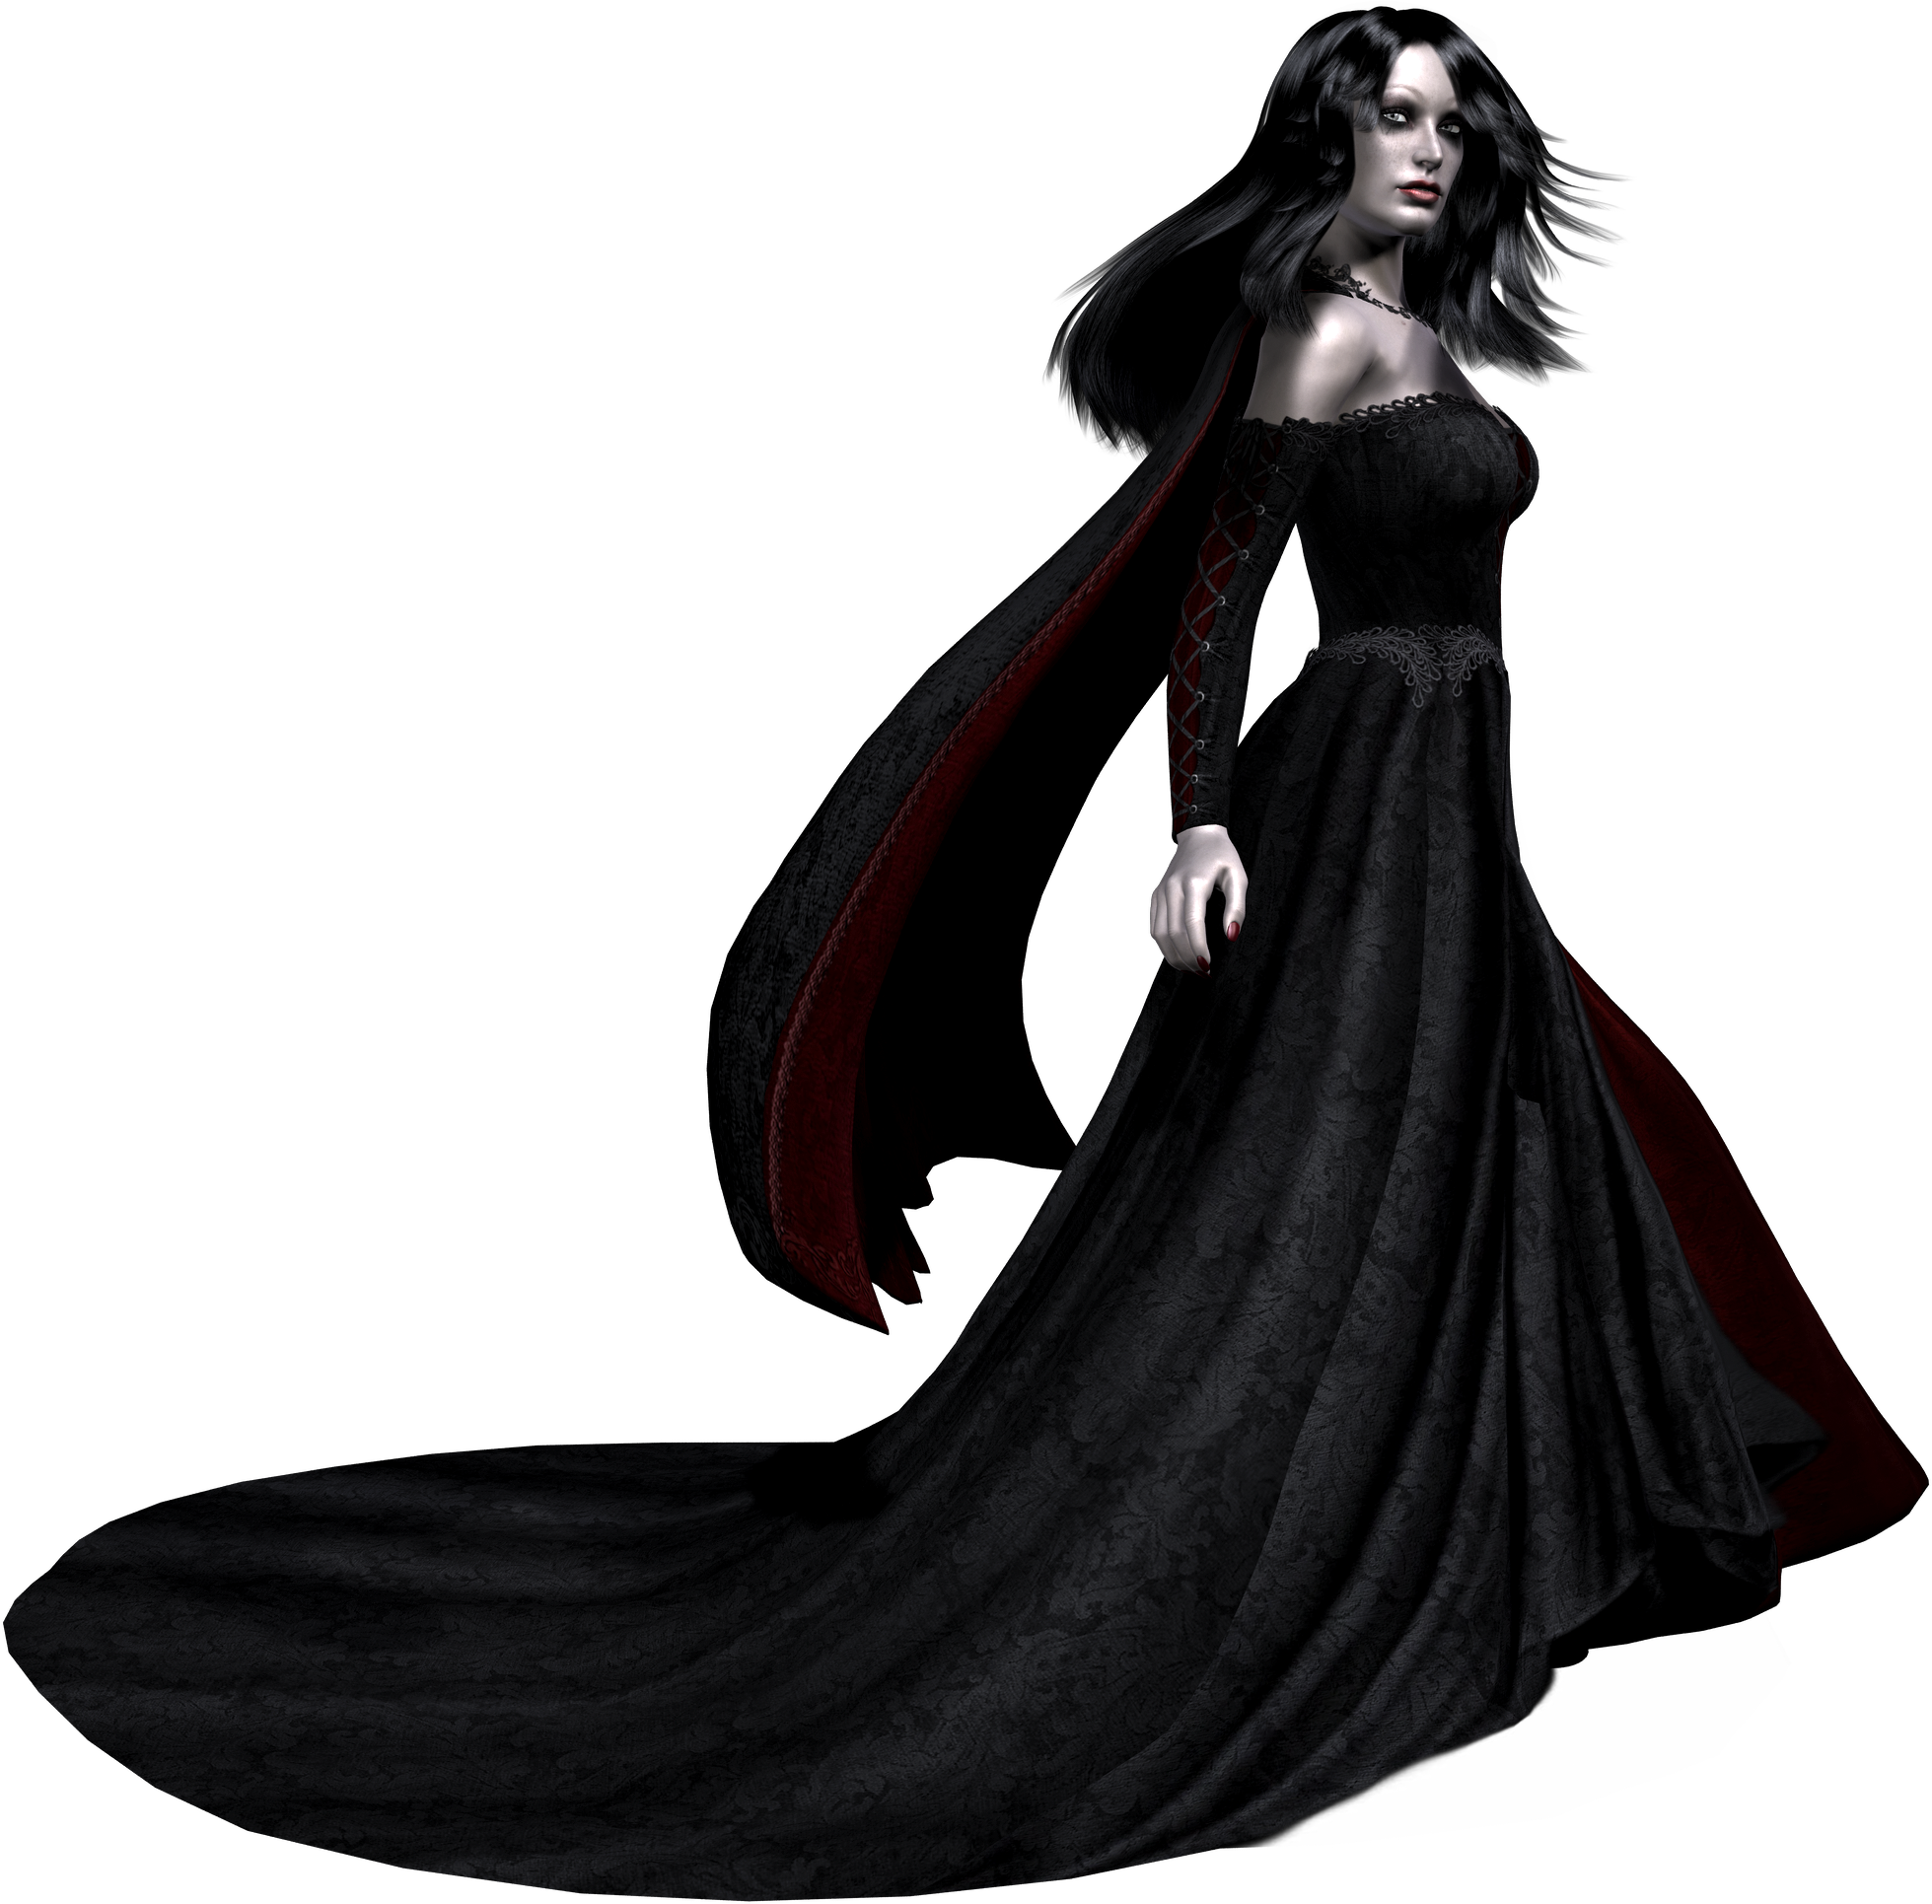 Vampire girl png. Witch images free download